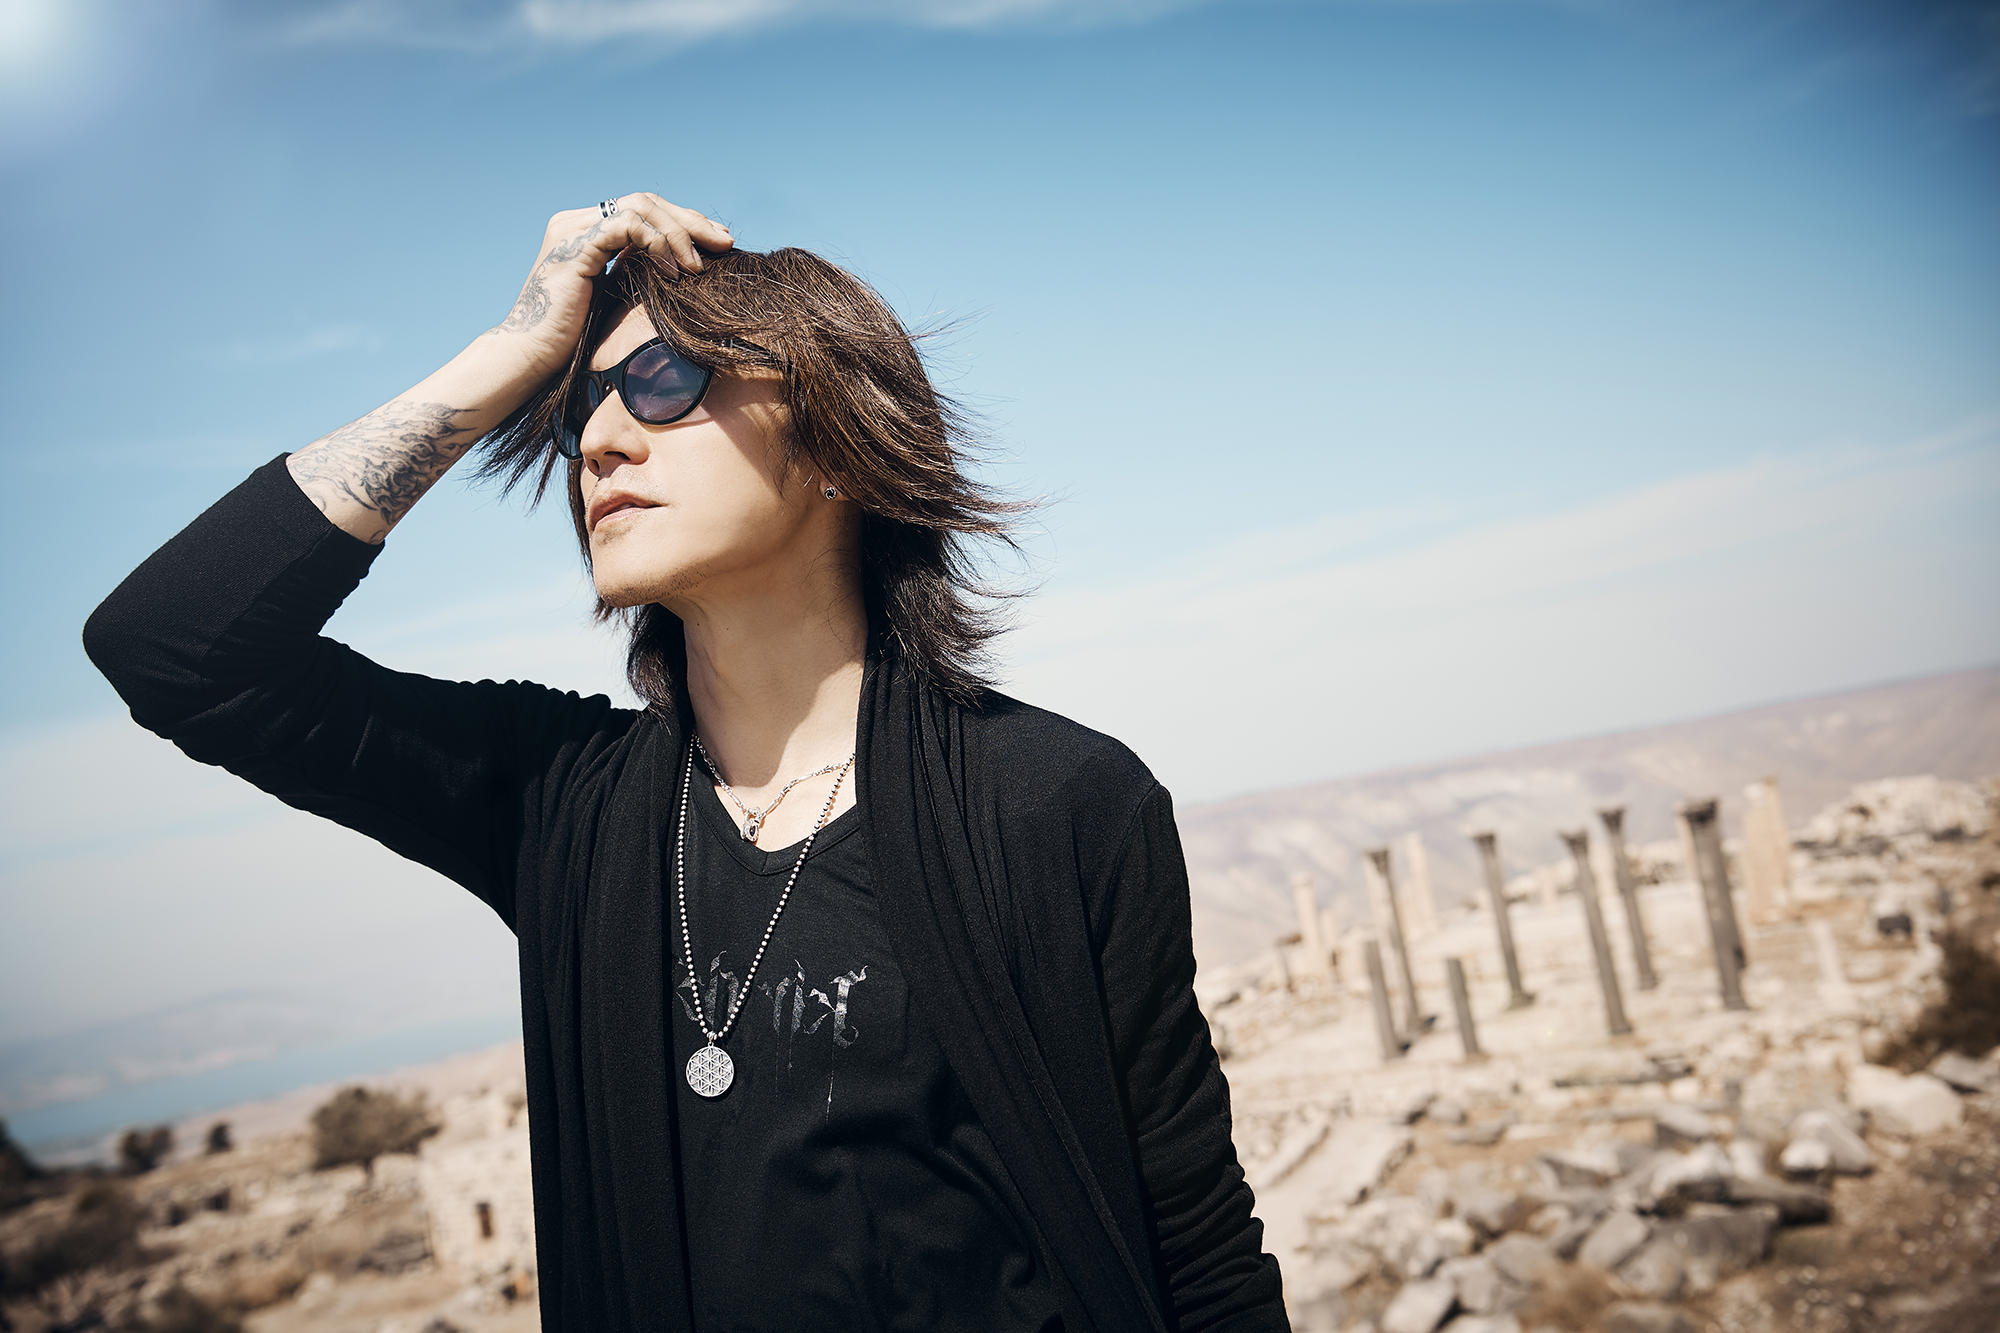 SUGIZO will be holding his first live steaming concert ' LIVE STREAMING FROM TOKYO EPISODE I ~RE-ECHO TO COSMIC DANCE〜' at 7:30pm on October 14th.